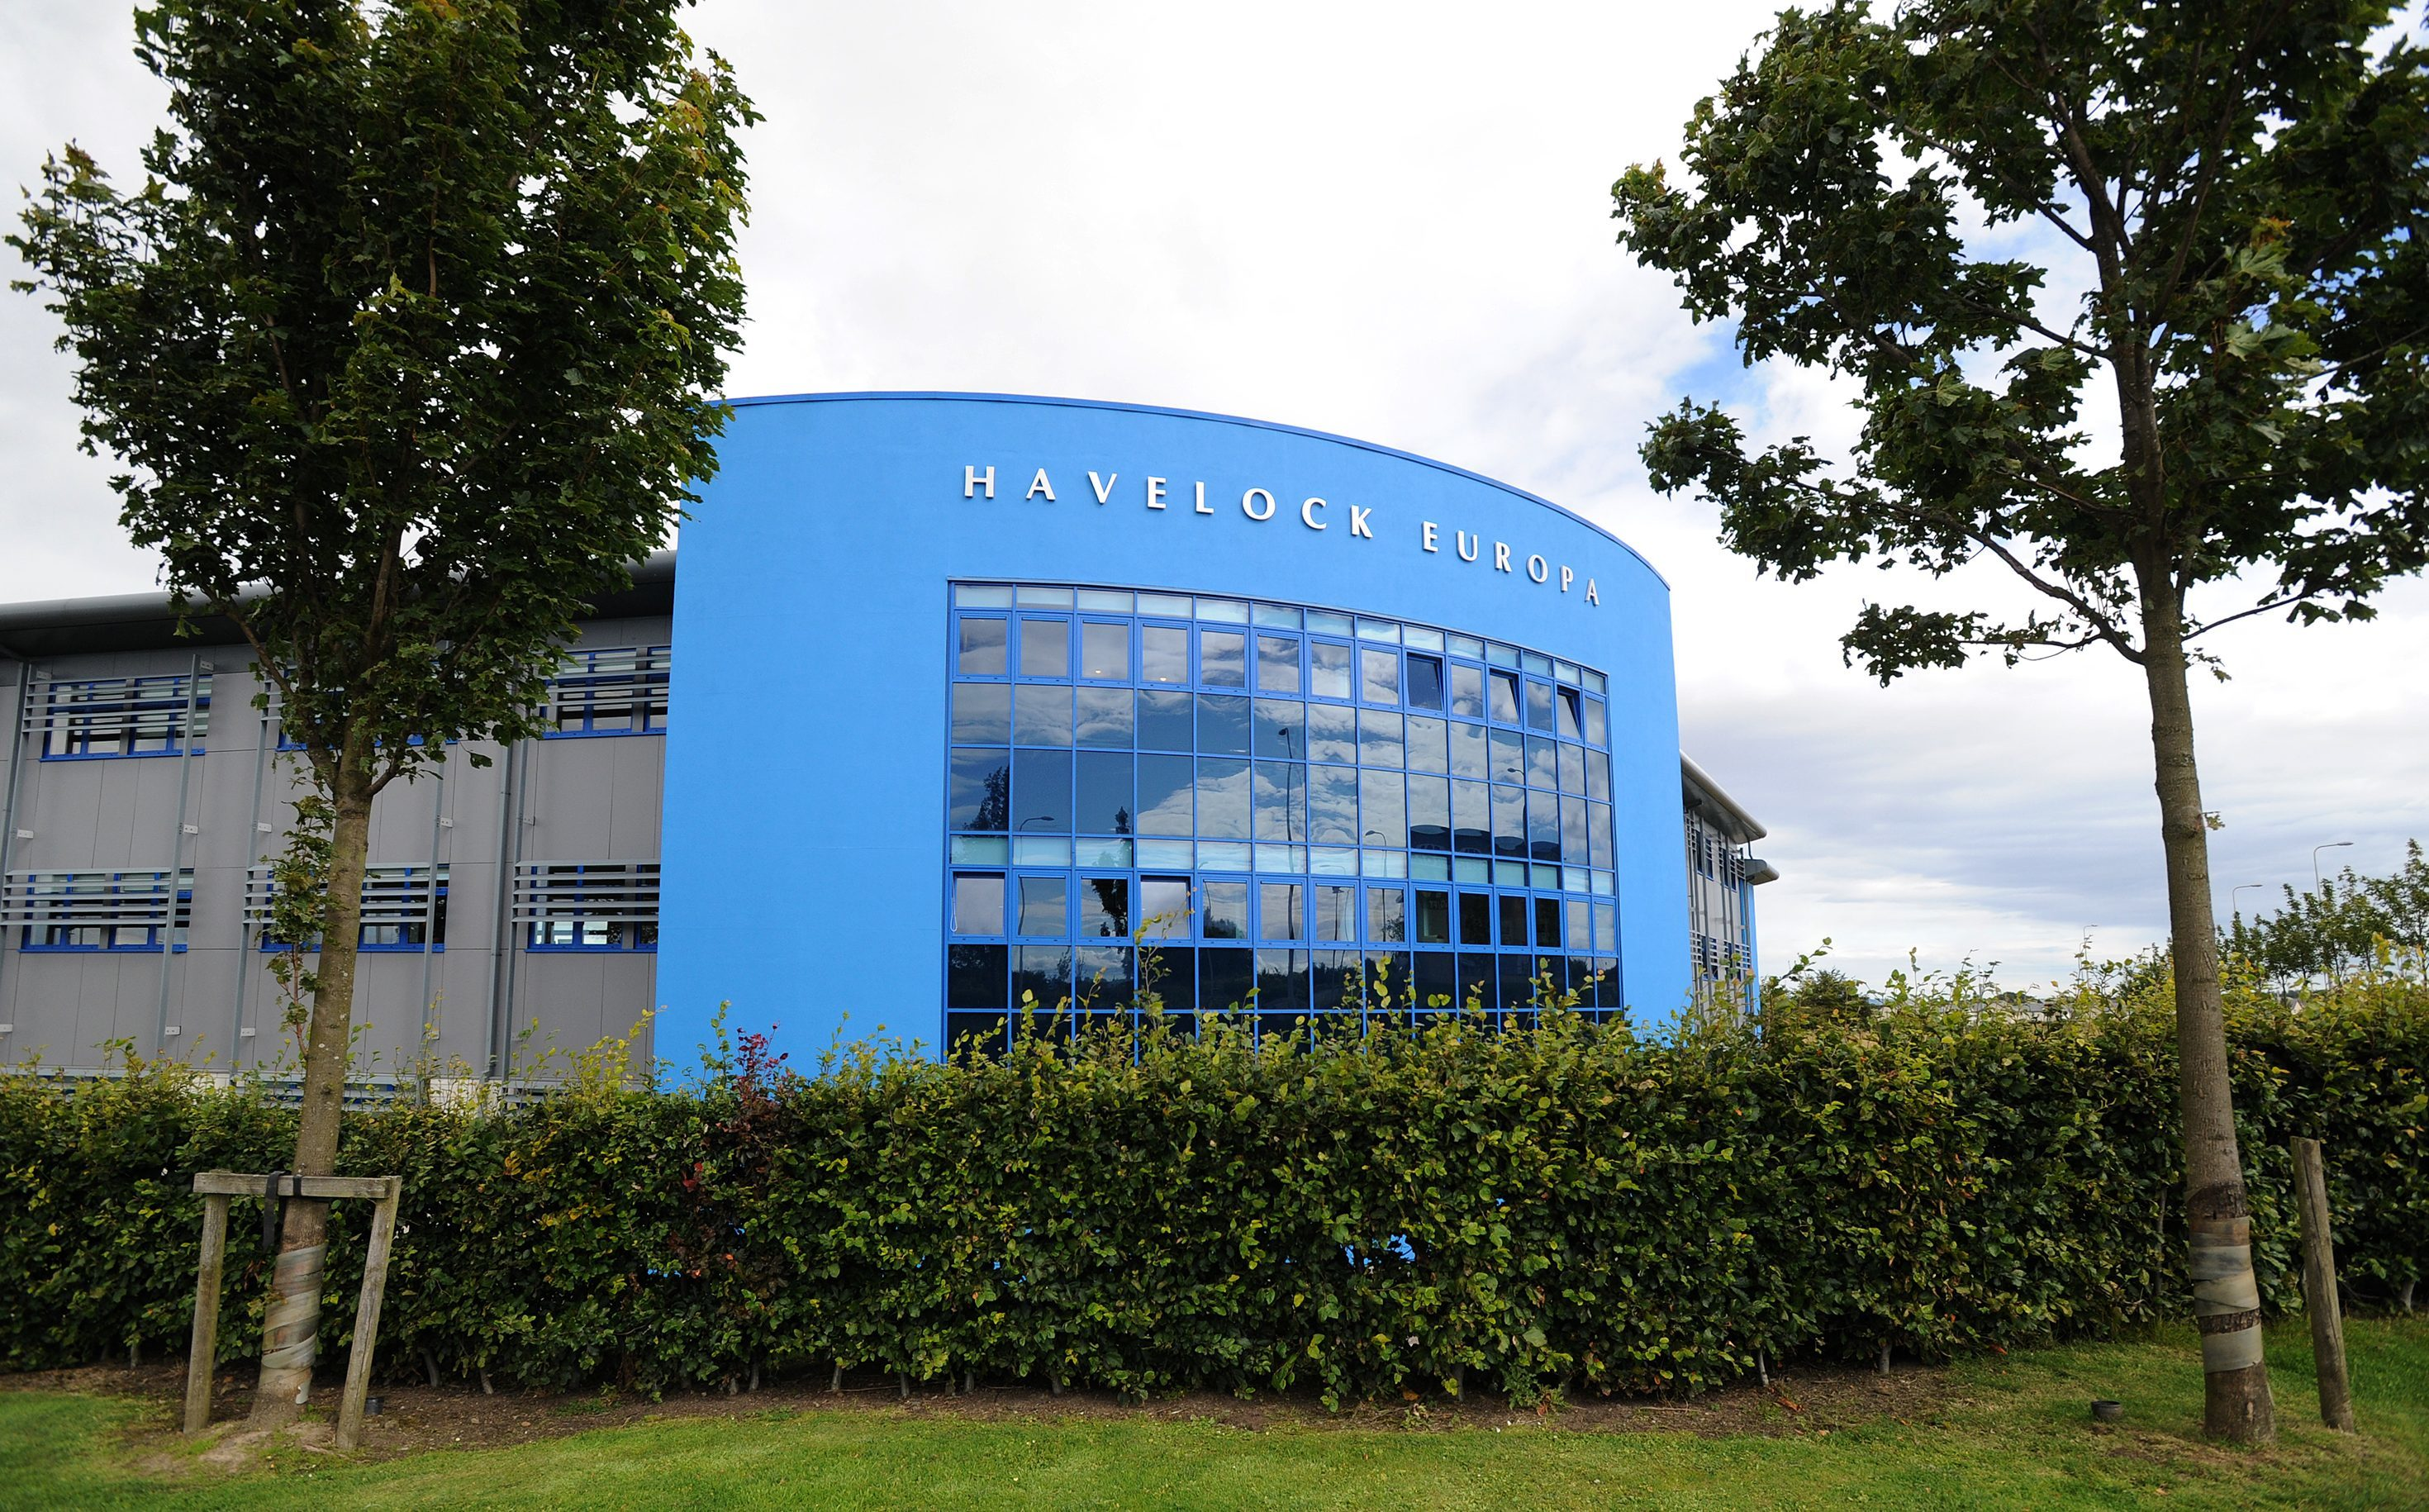 The Havelock Europa headquarters in John Smith Business Park, Kirkcaldy.